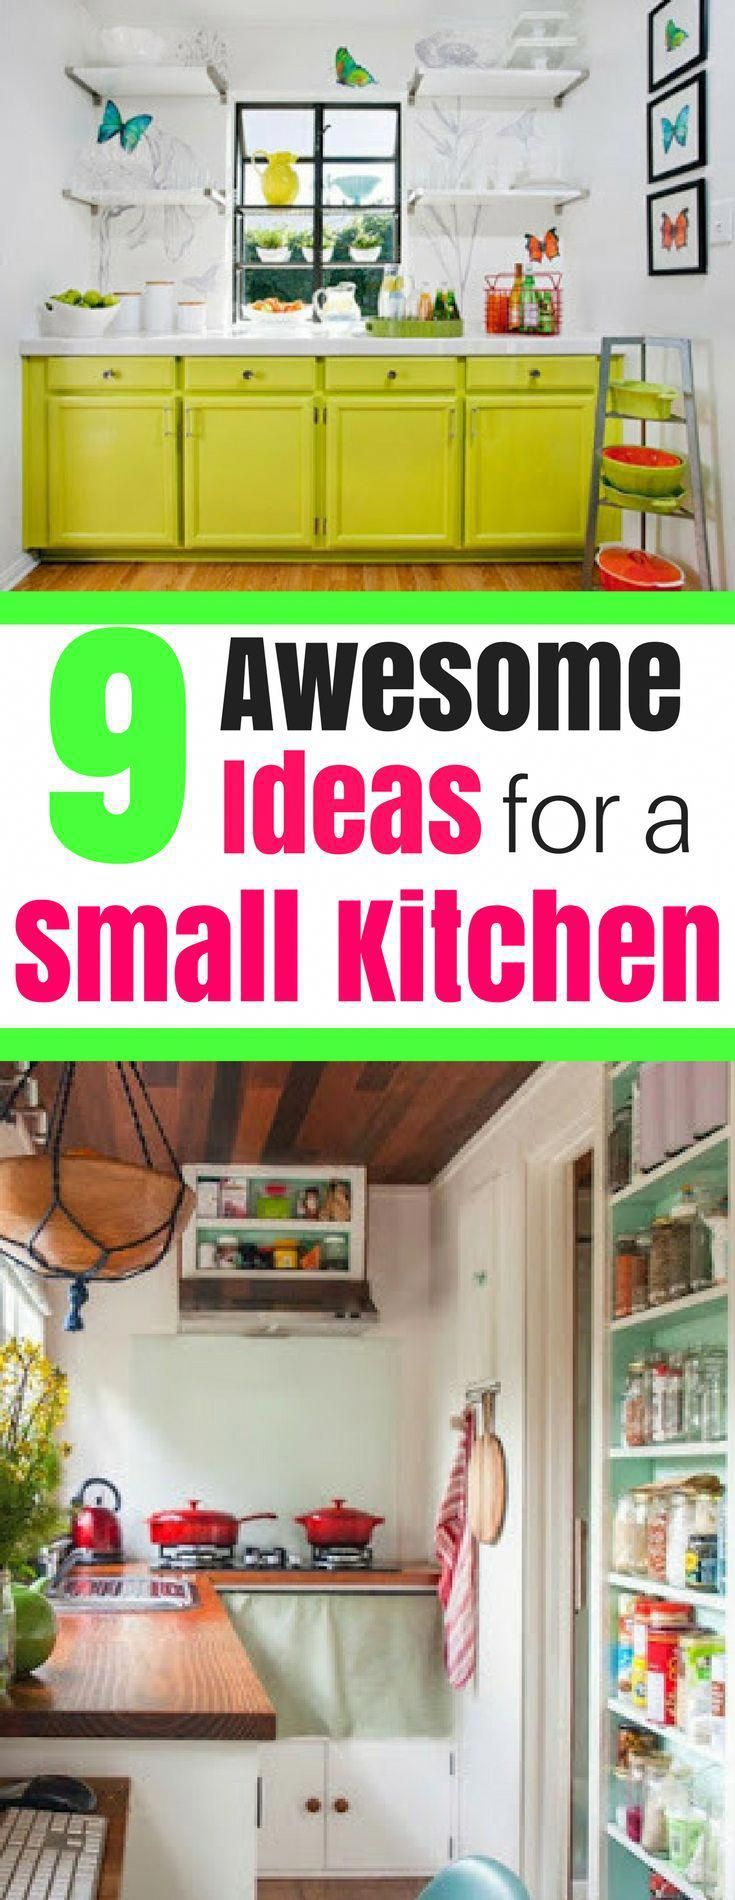 9 Awesome Ideas for a Small Kitchen kitchenideas